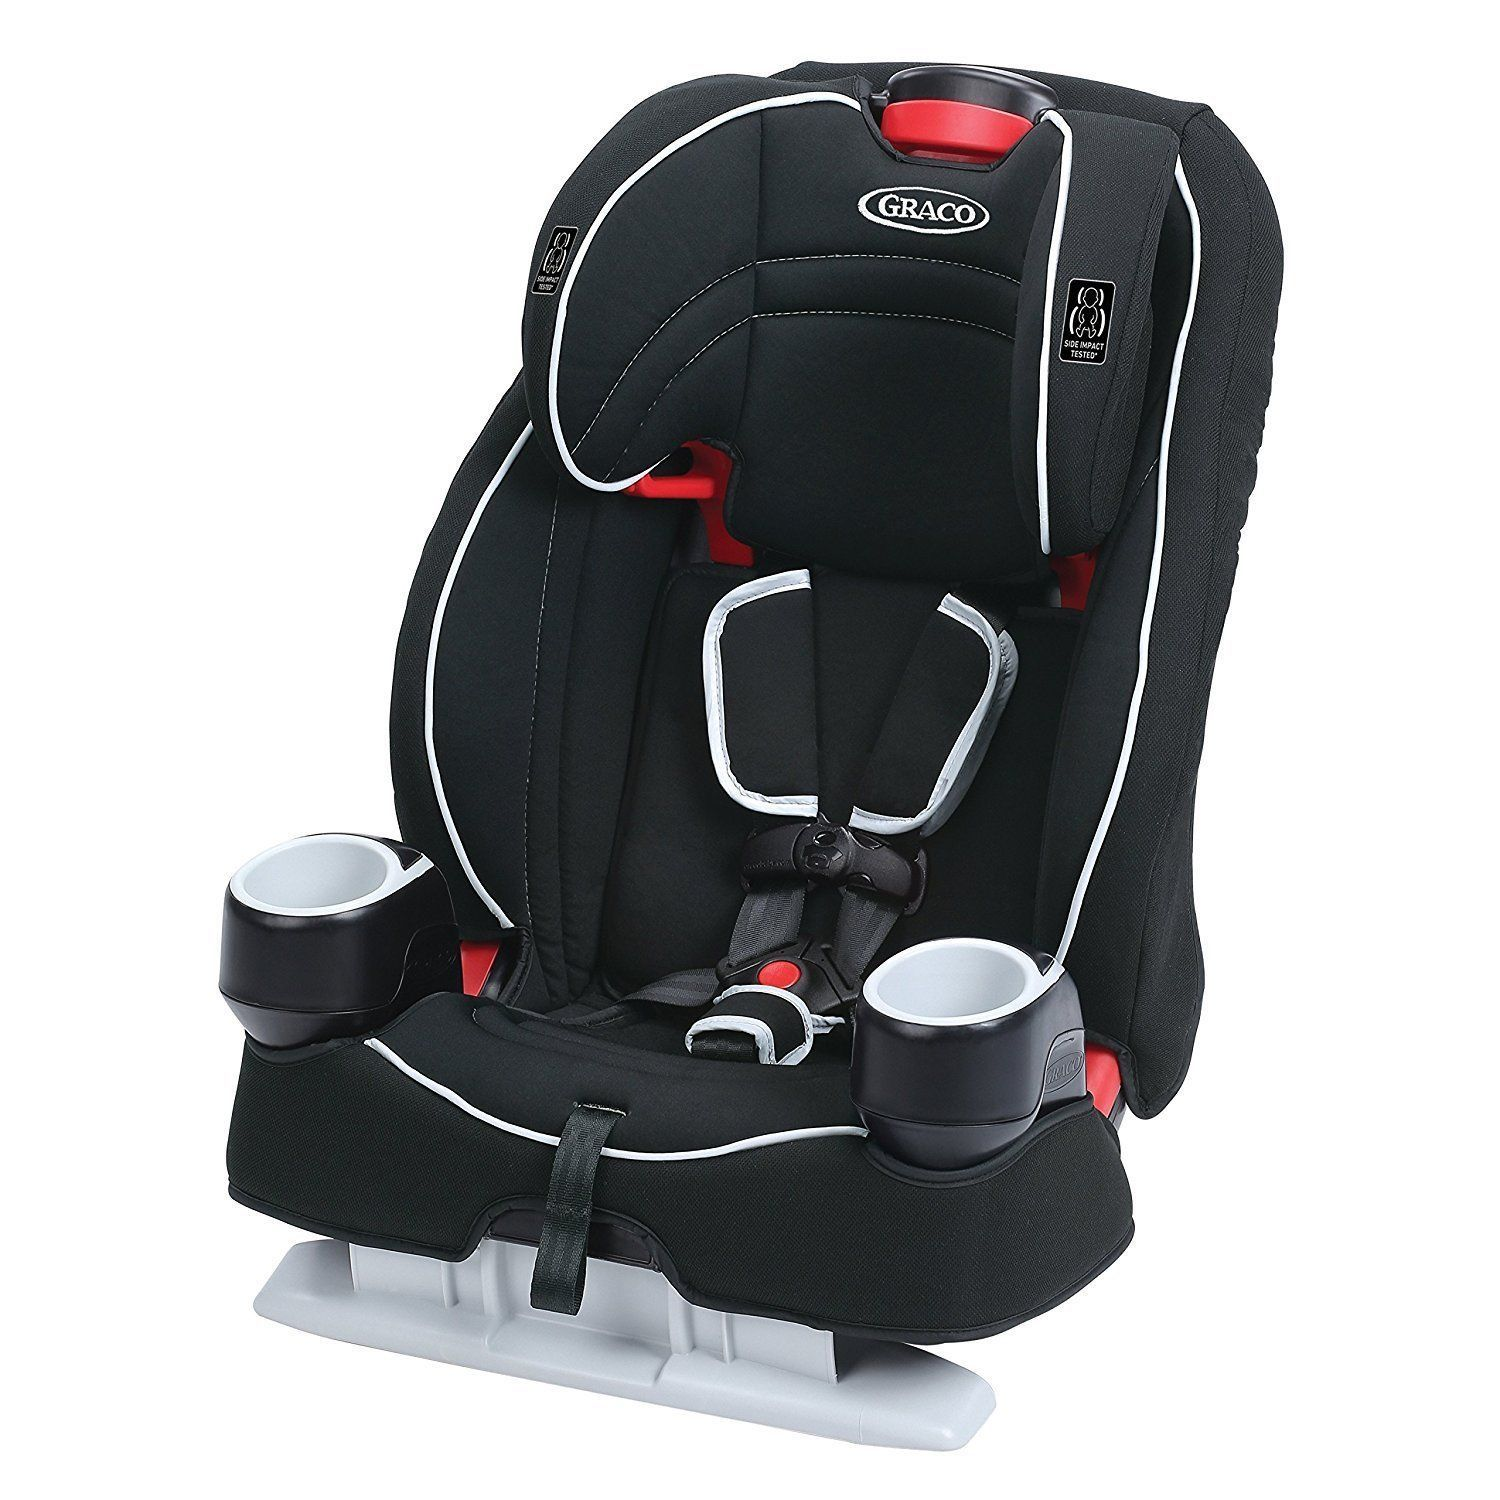 Graco high chair 4 in 1 graco atlas  glacier in harness booster car seat  products